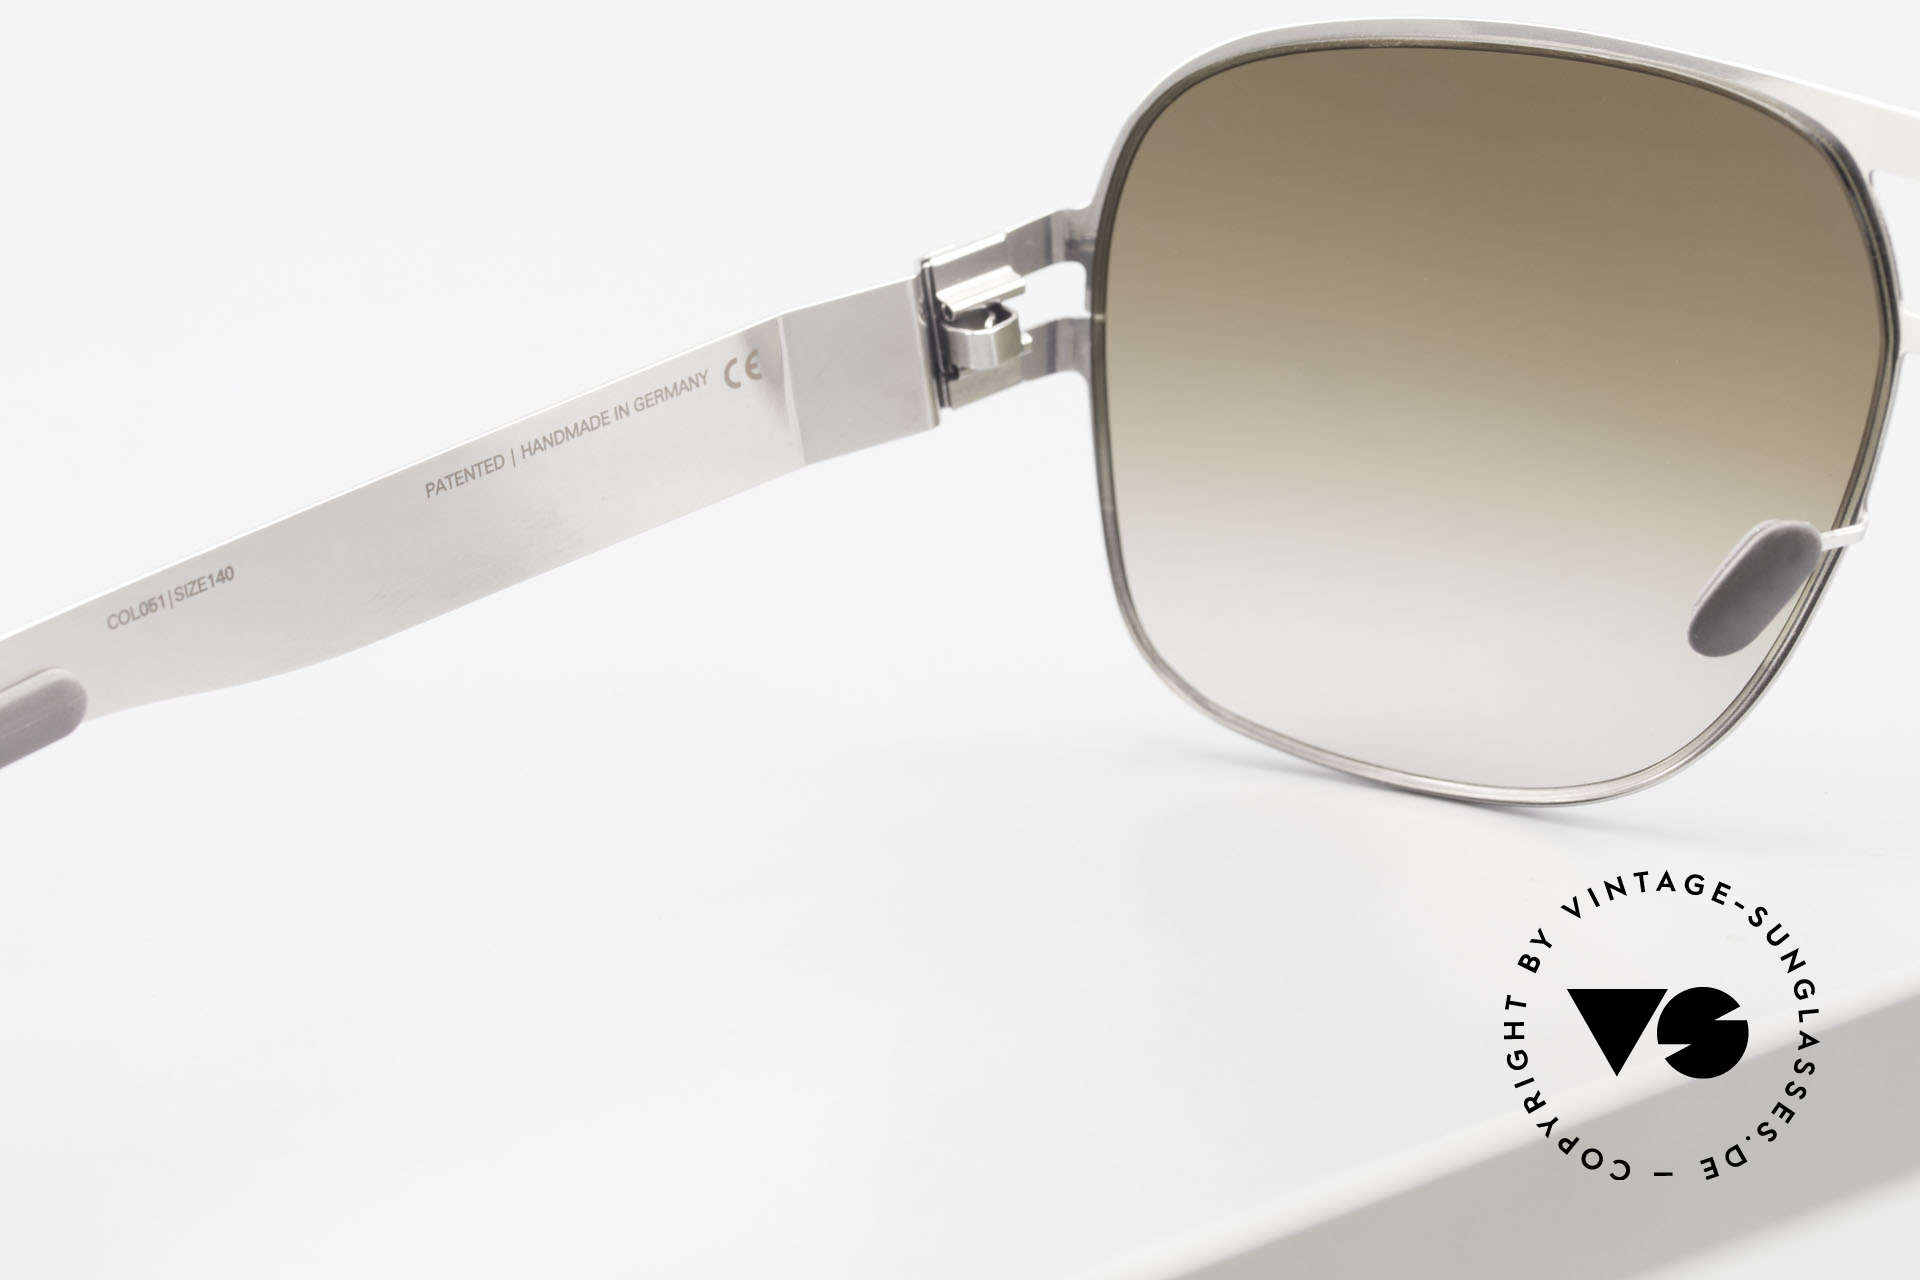 Mykita Clifford 2000's Vintage Aviator Shades, worn by many celebs (rare & in high demand, meanwhile), Made for Men